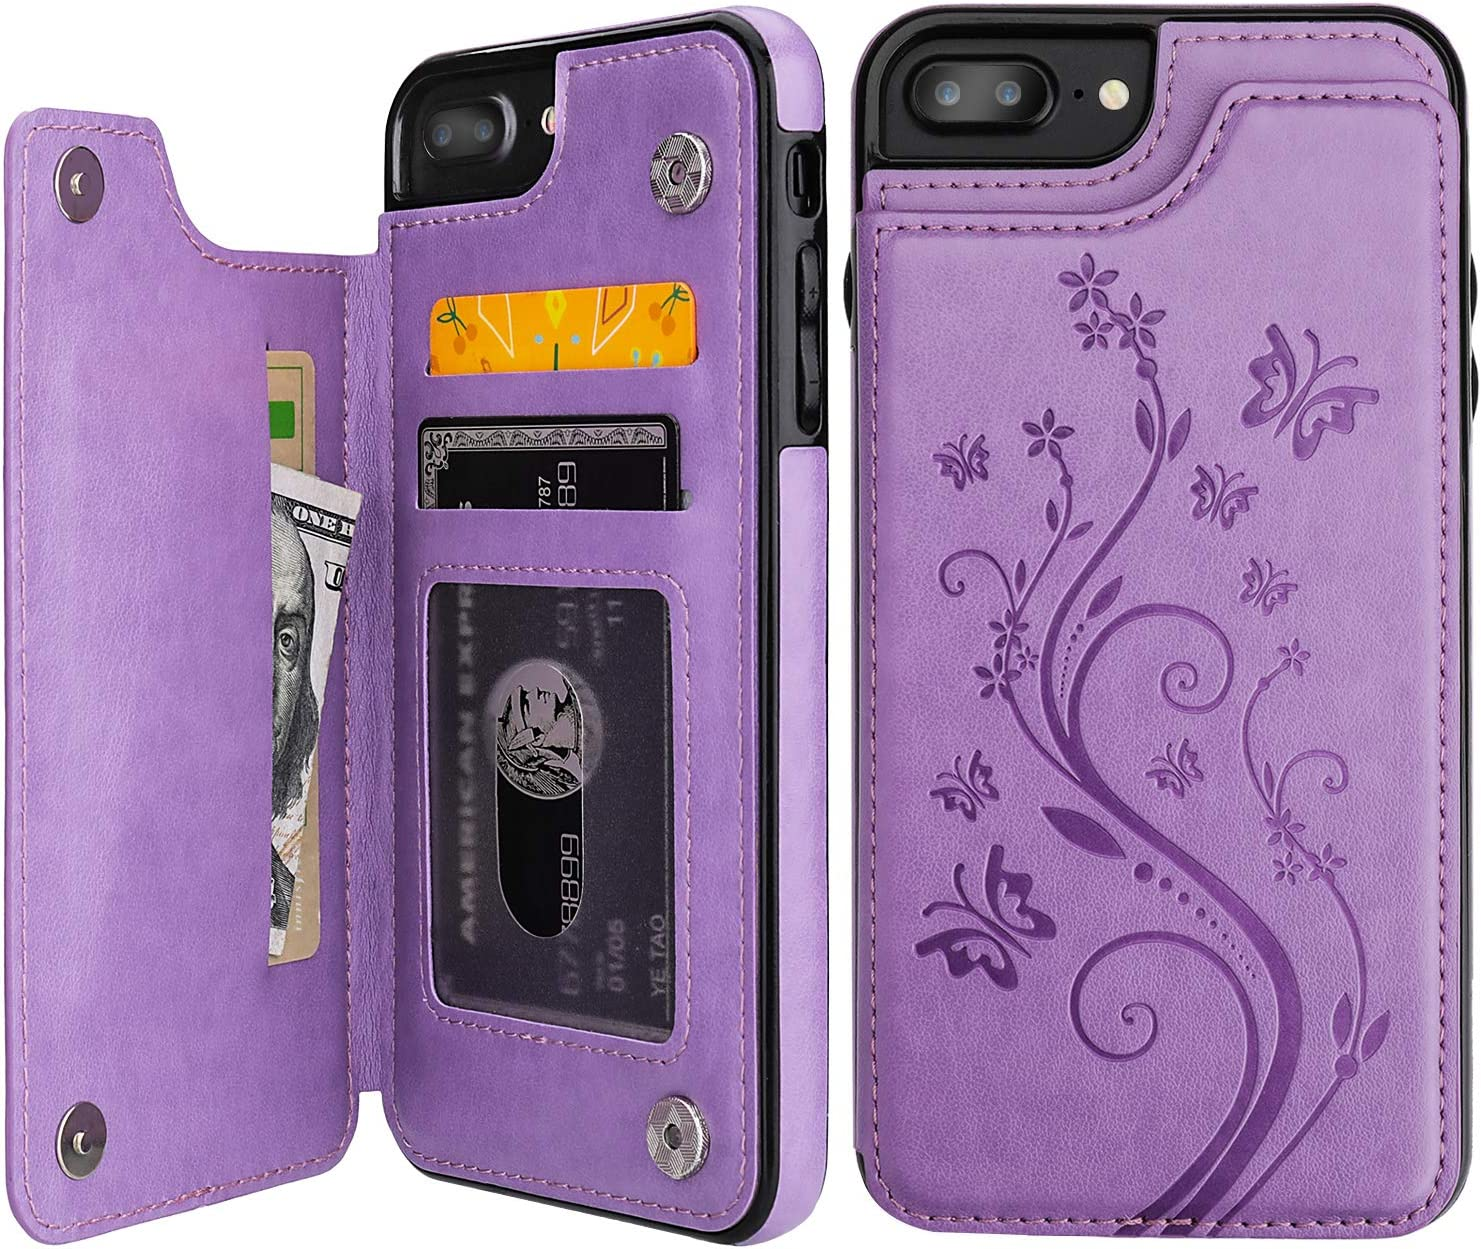 Vaburs iPhone 7 Plus iPhone 8 Plus Case Wallet with Card Holder, Embossed Butterfly Premium PU Leather Double Magnetic Buttons Flip Shockproof Cover for iPhone 7/8 Plus Case (Purple)